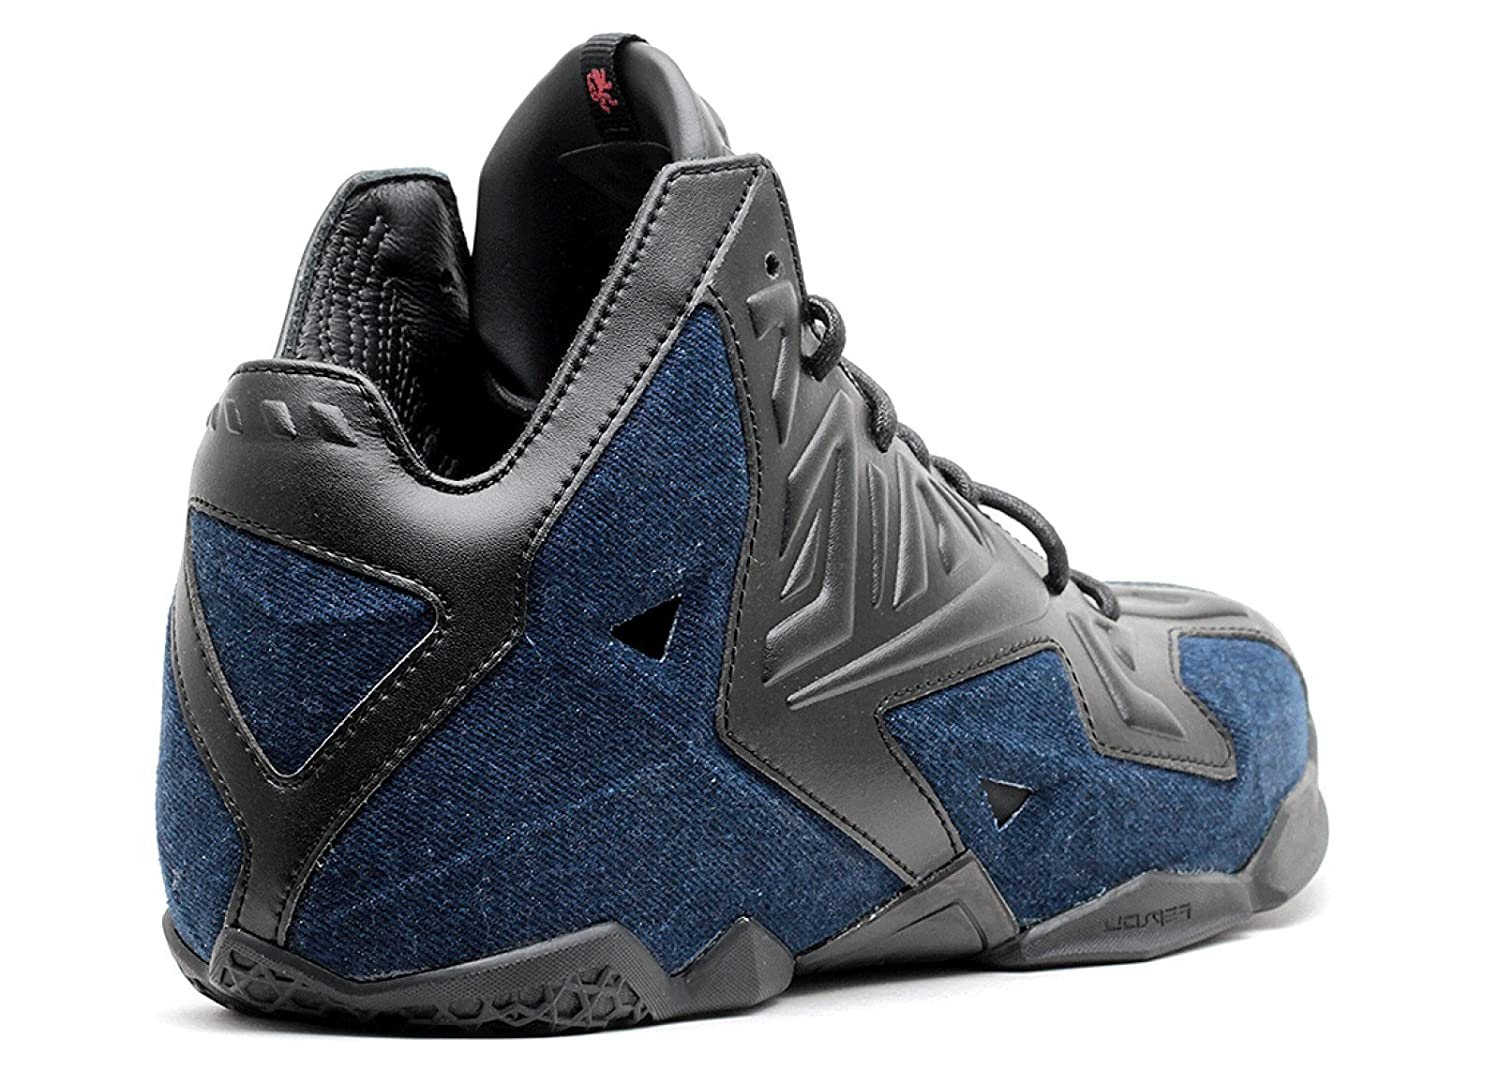 reputable site 45d64 cf59f Amazon.com   Nike Lebron XI EXT Denim QS Men s Shoes Black Black-Denim  659509-004   Basketball